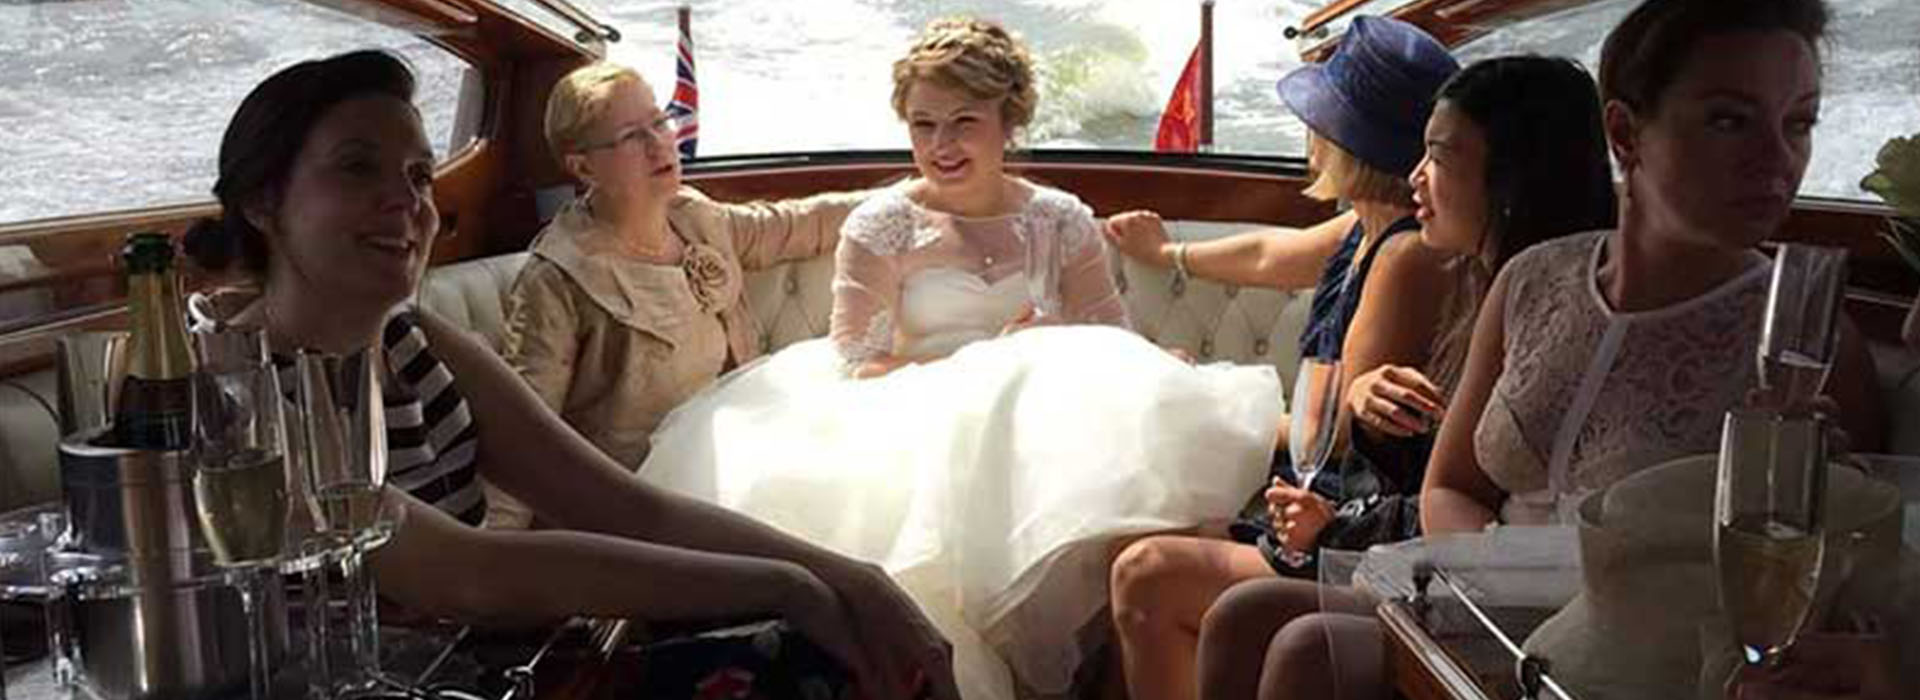 Thames Wedding Cruises - Tie the Knot on the River Thames, London